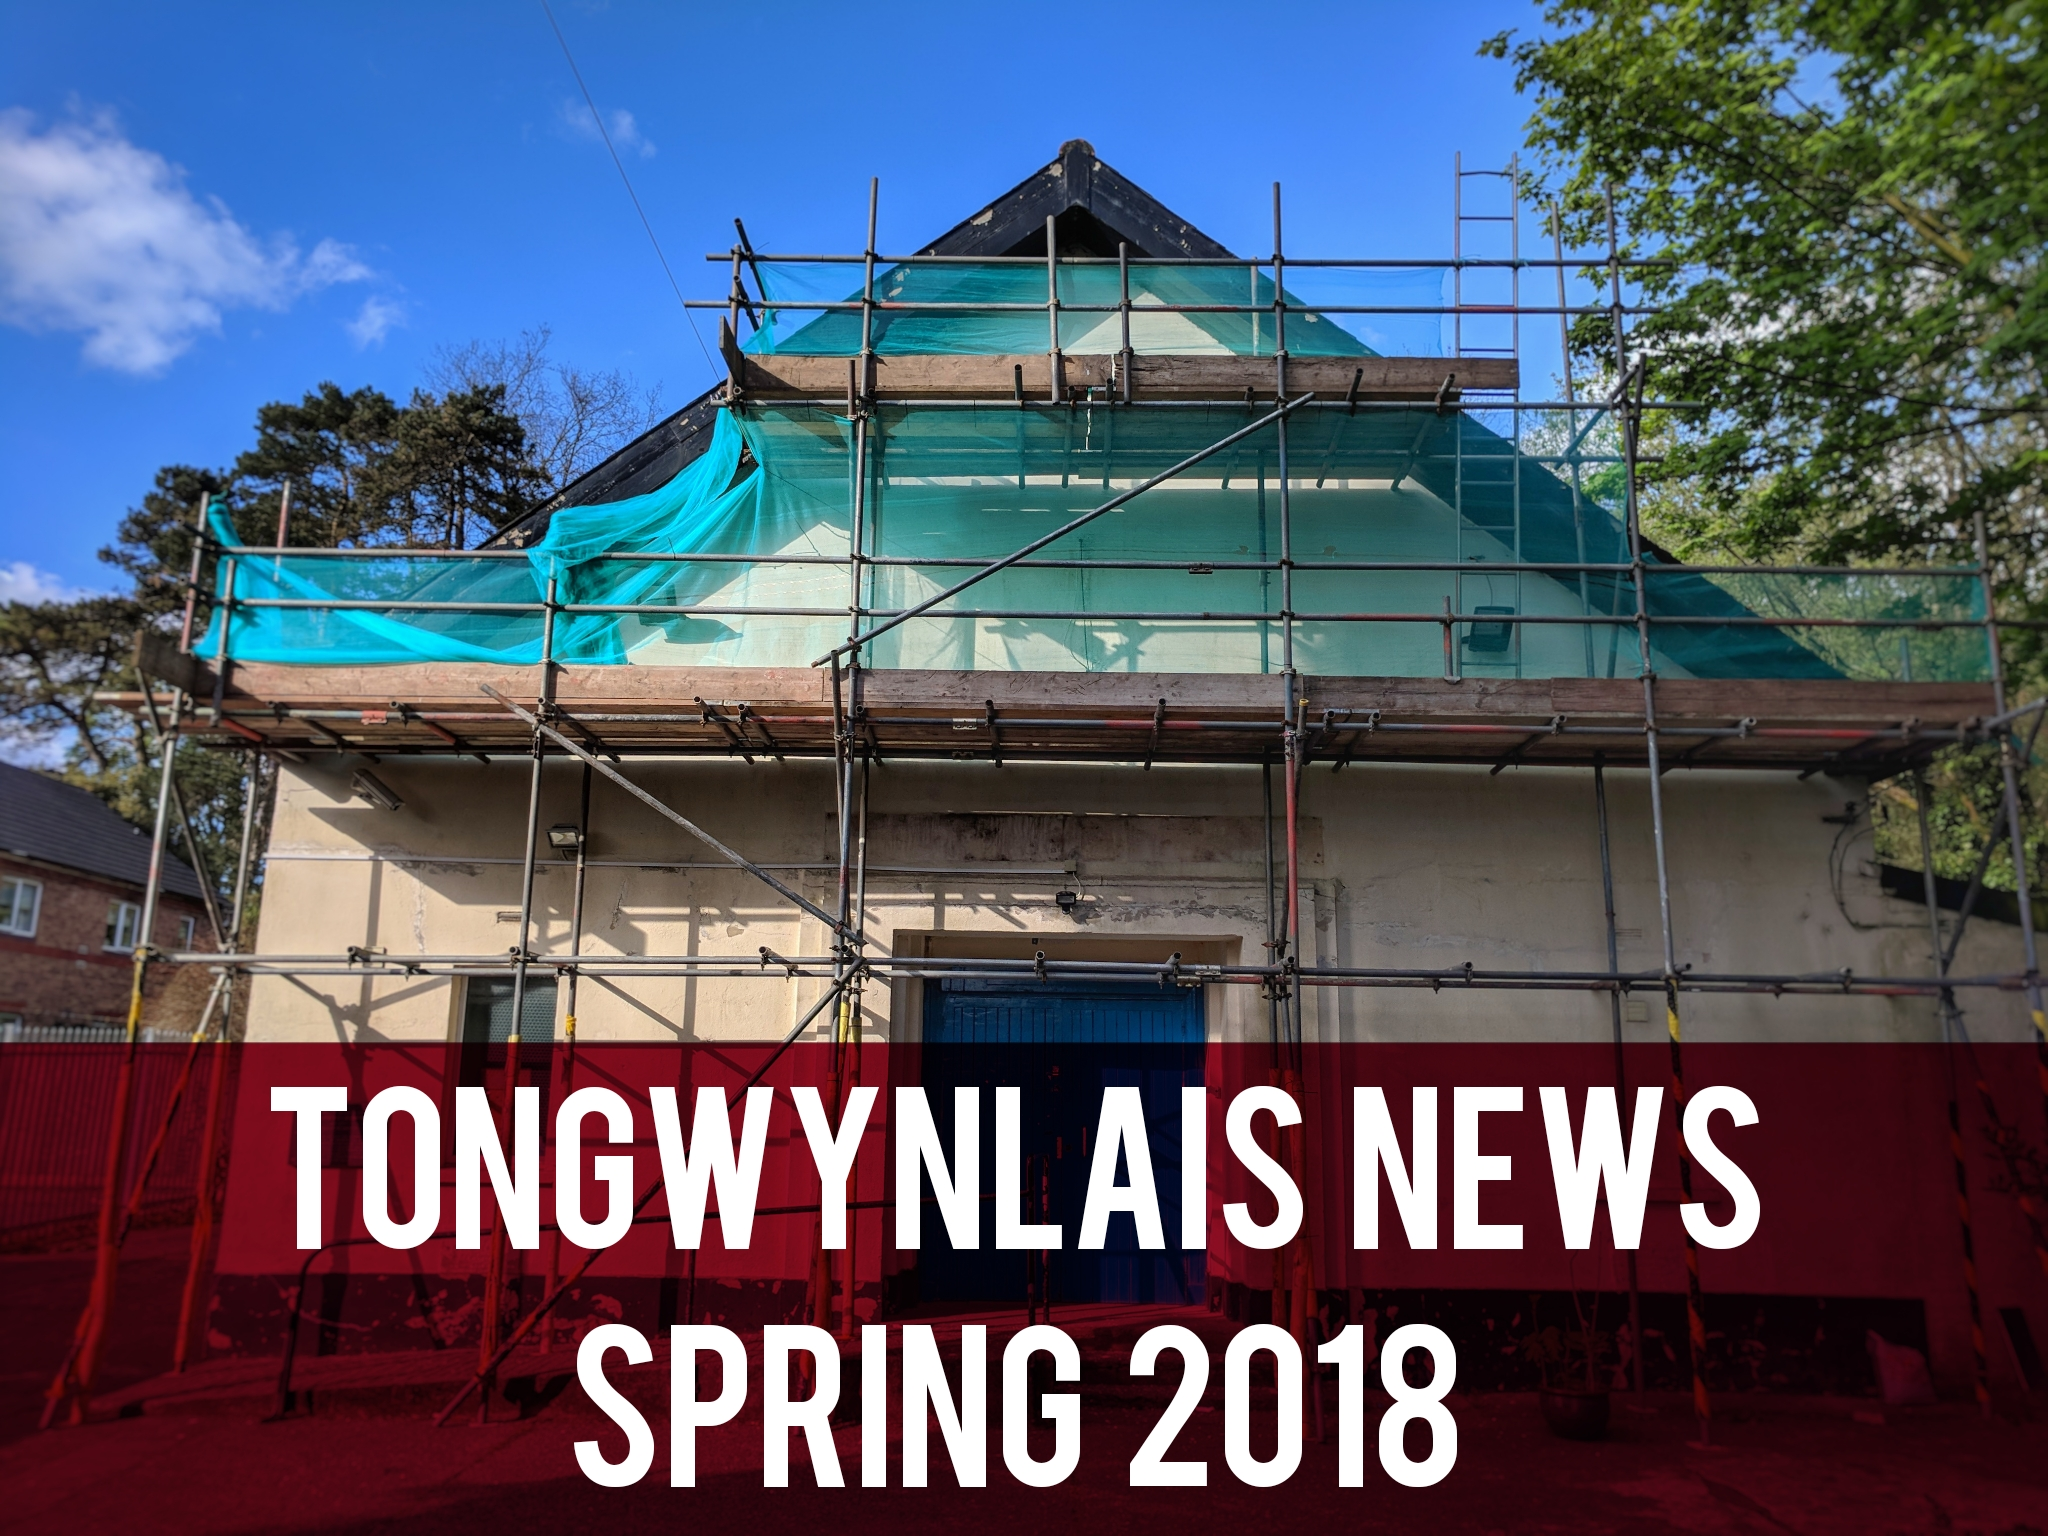 Tongwynlais News Spring 2018 header